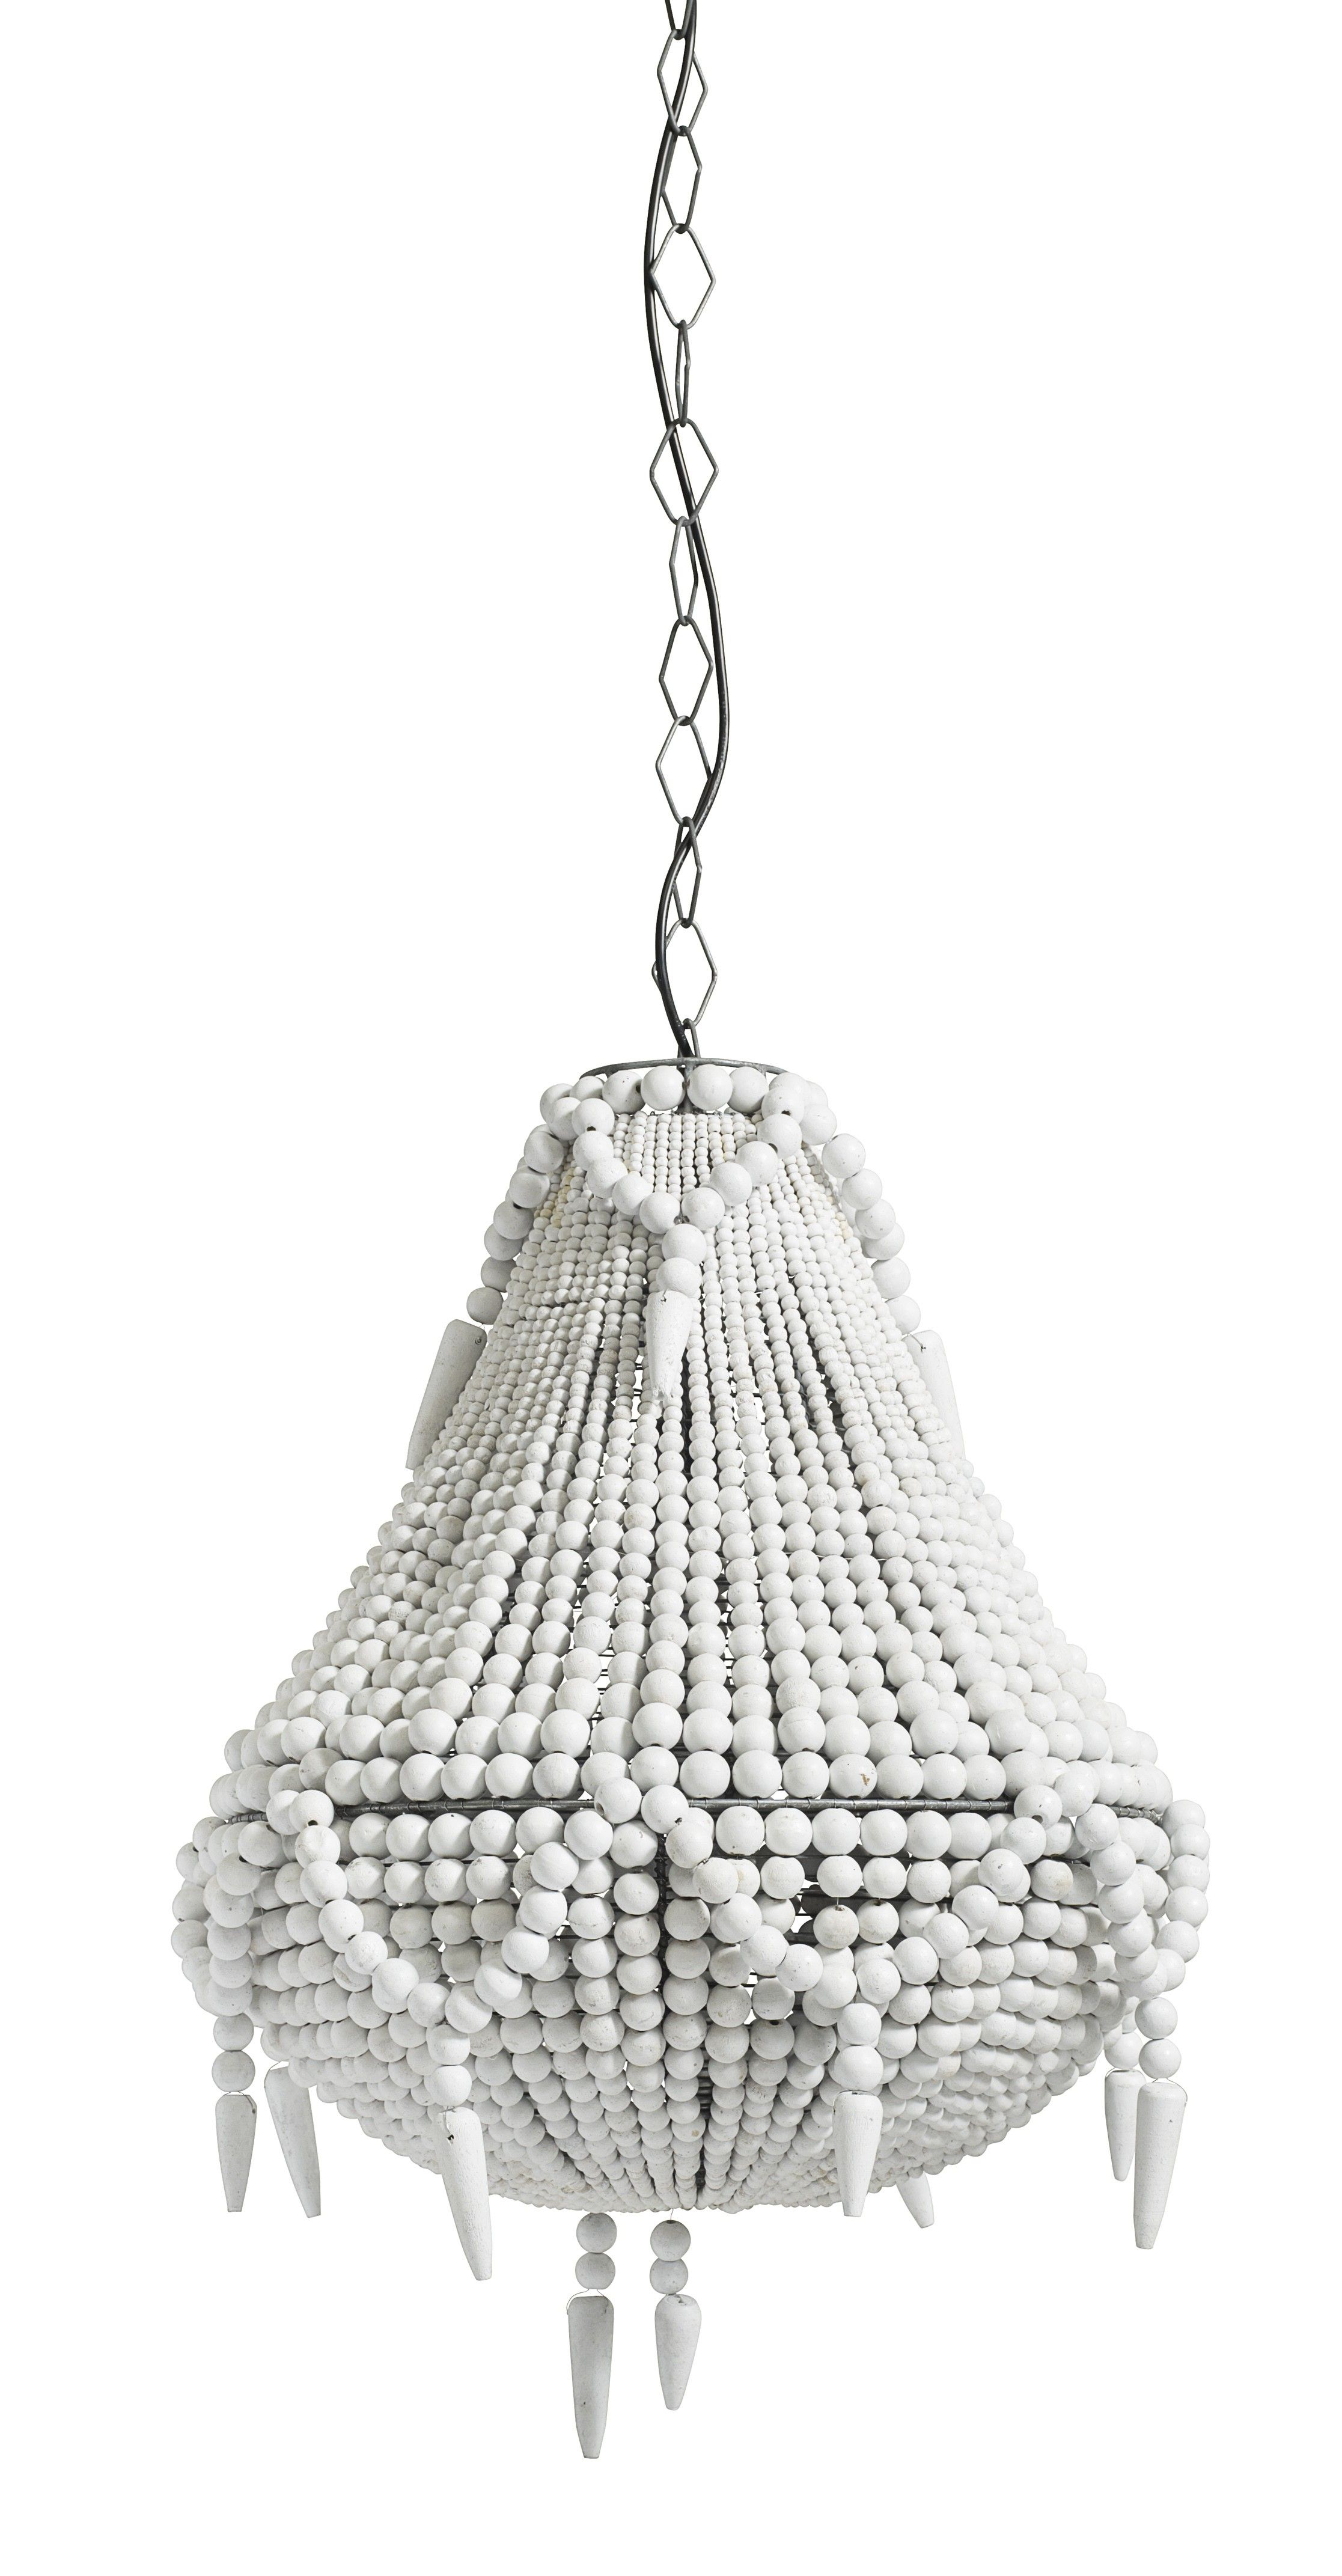 crystal chandeliers id lights beaded italian pendant at lighting wood org furniture f monumental chandelier